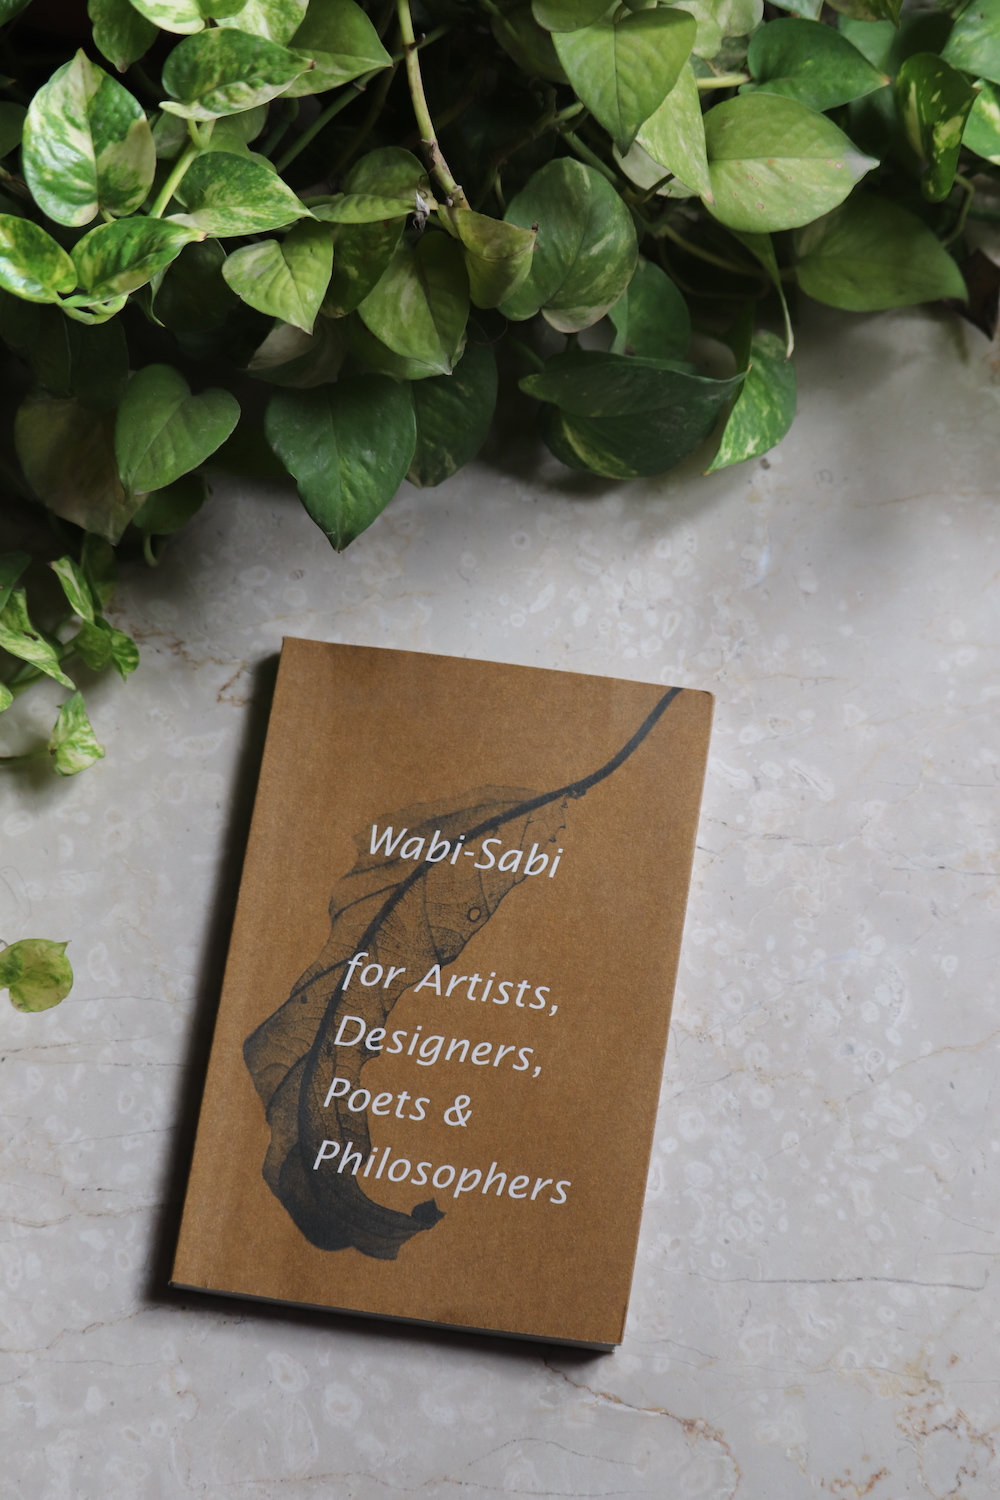 Sensitivity to nature in design. Essence of wabi sabi is the beauty of beings as it is, the imperfect and flawed